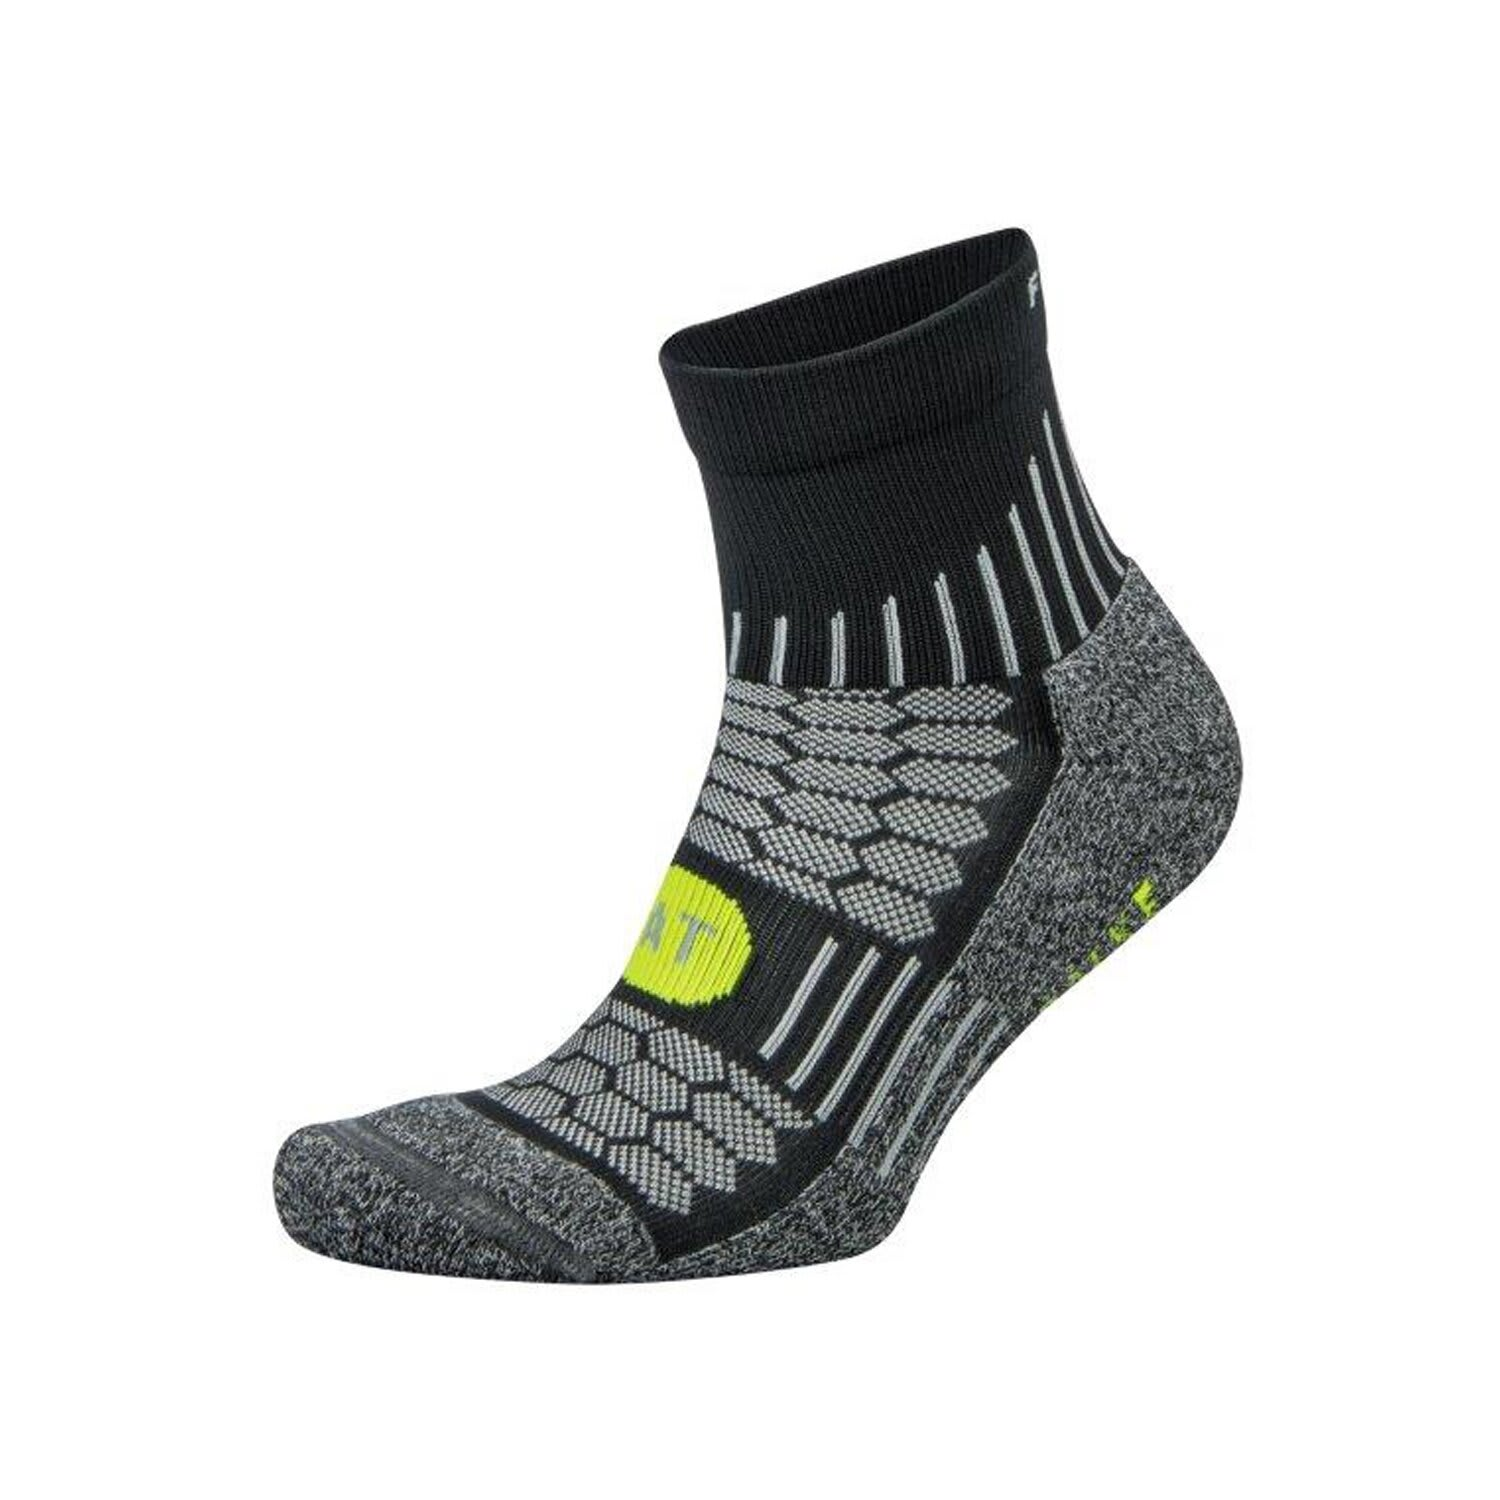 Falke Women's All Terrain Run Sock